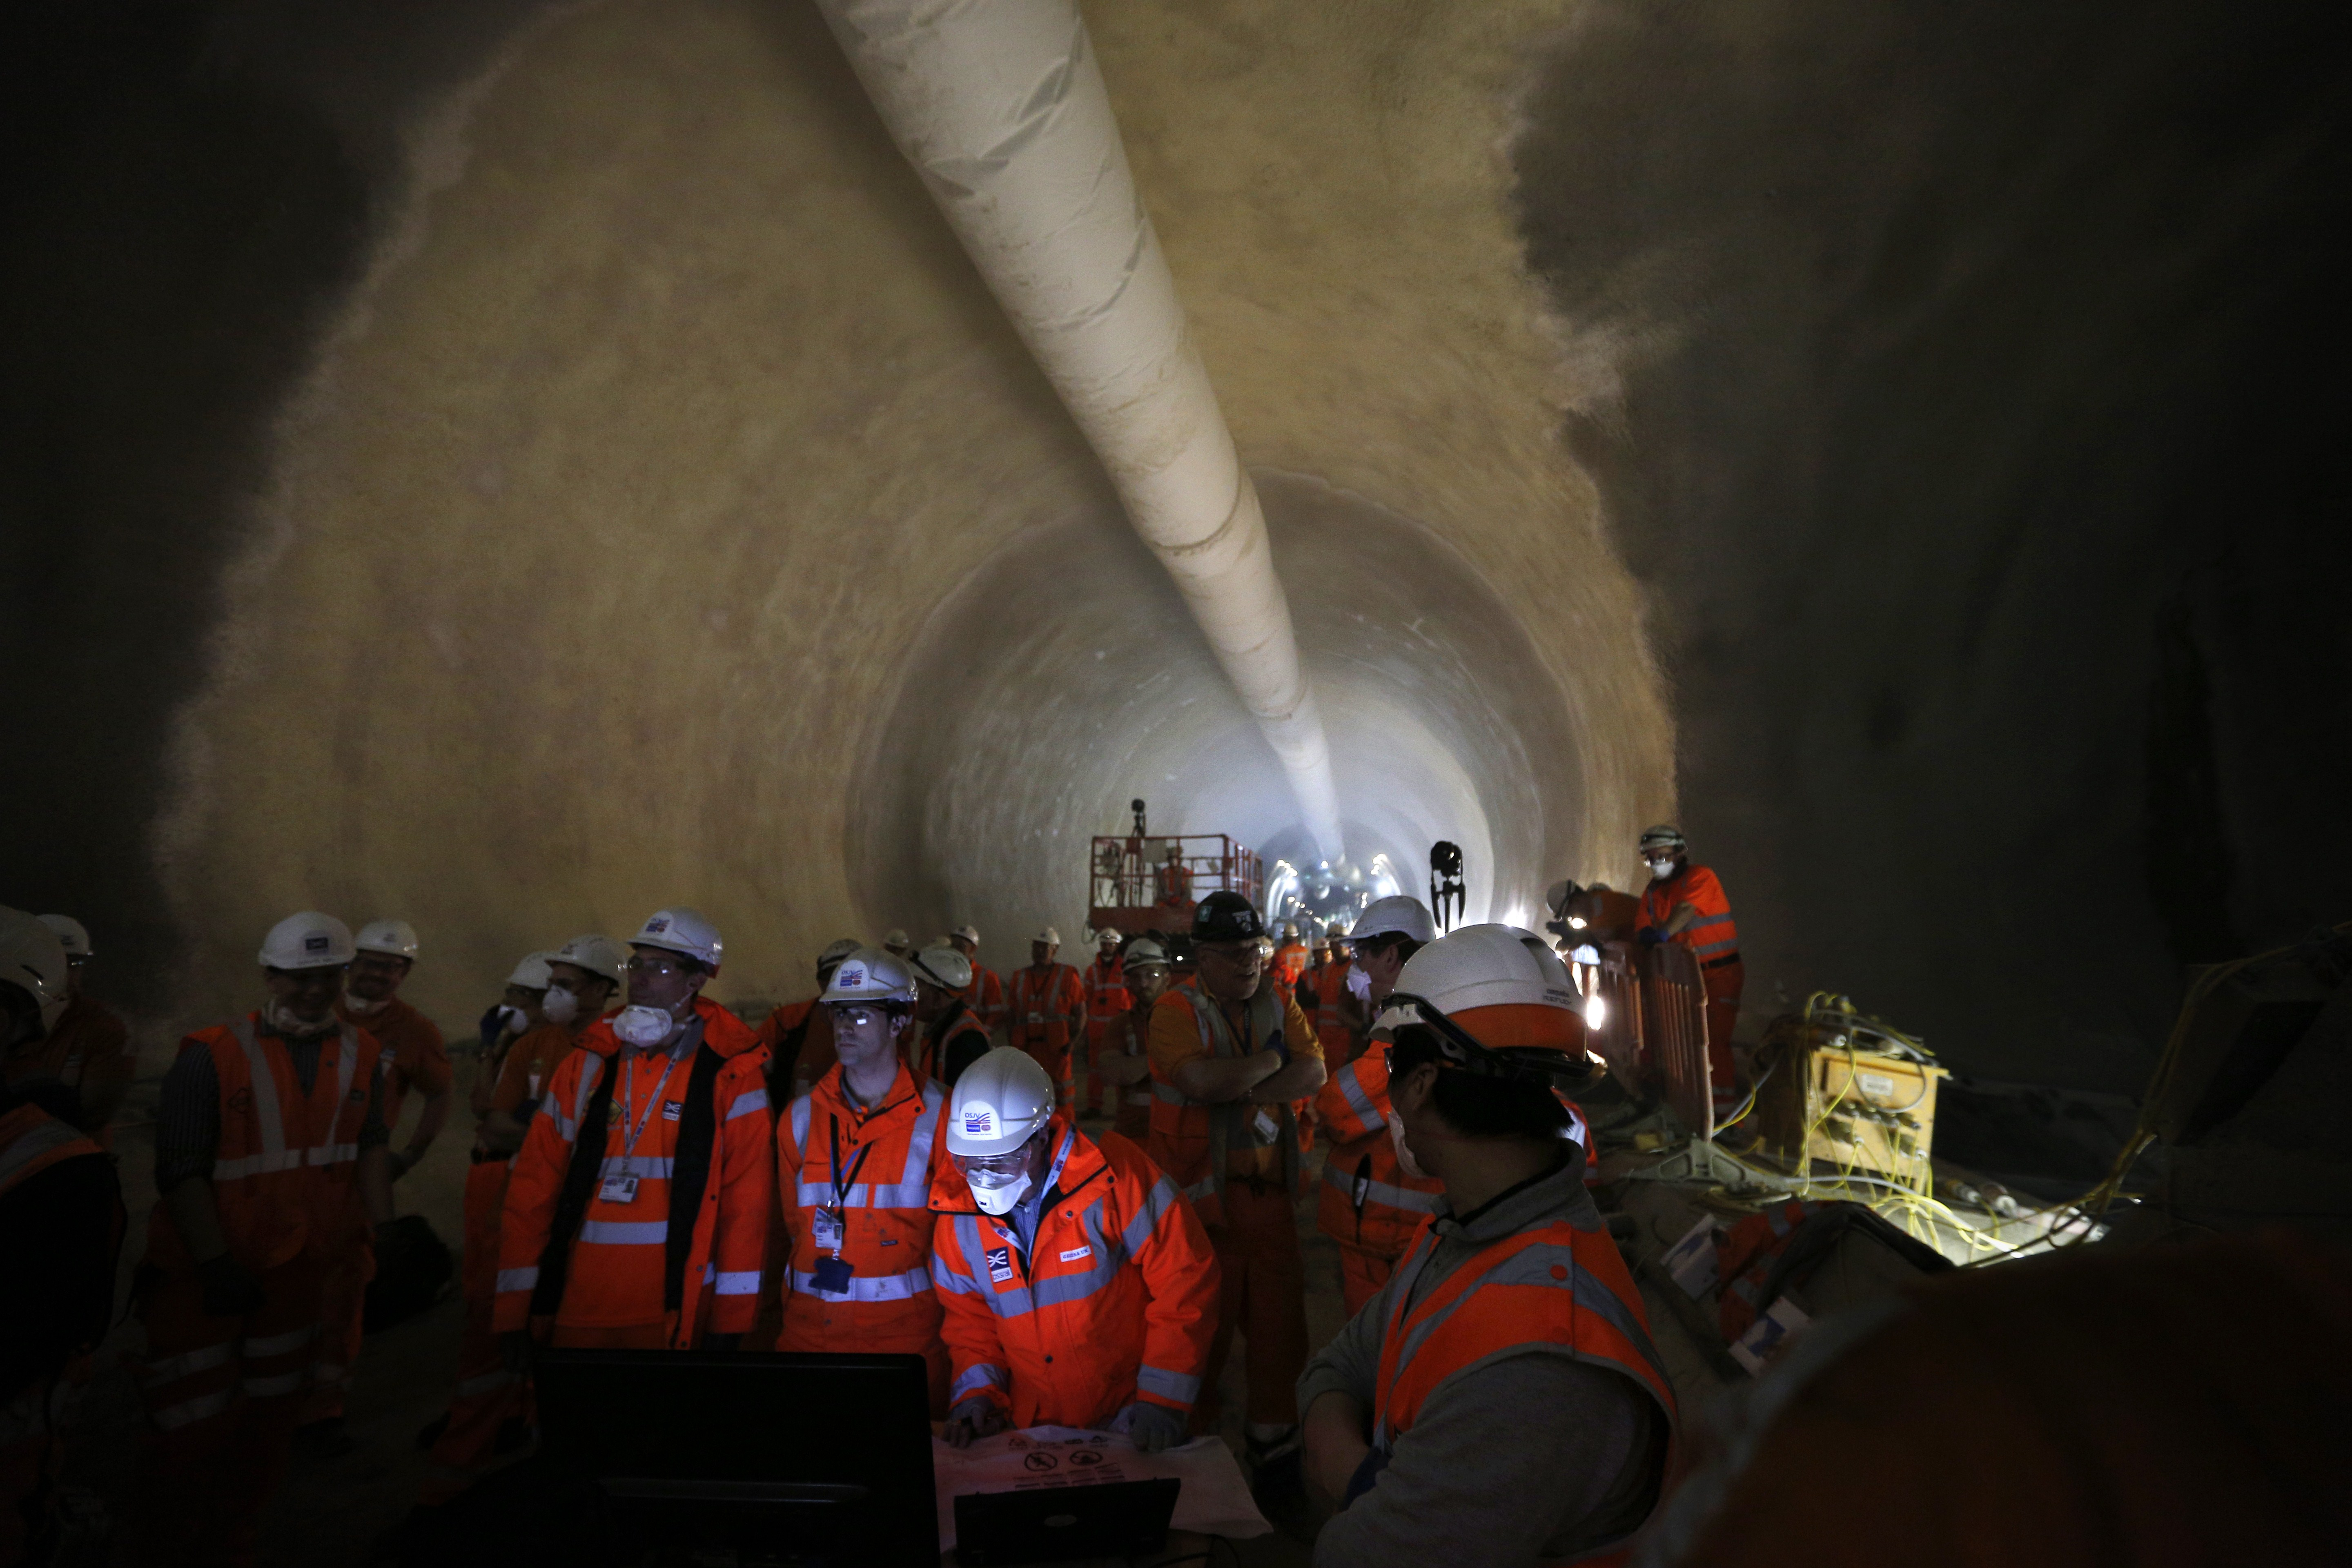 Construction work on Crossrail has been taking place across the capital for years